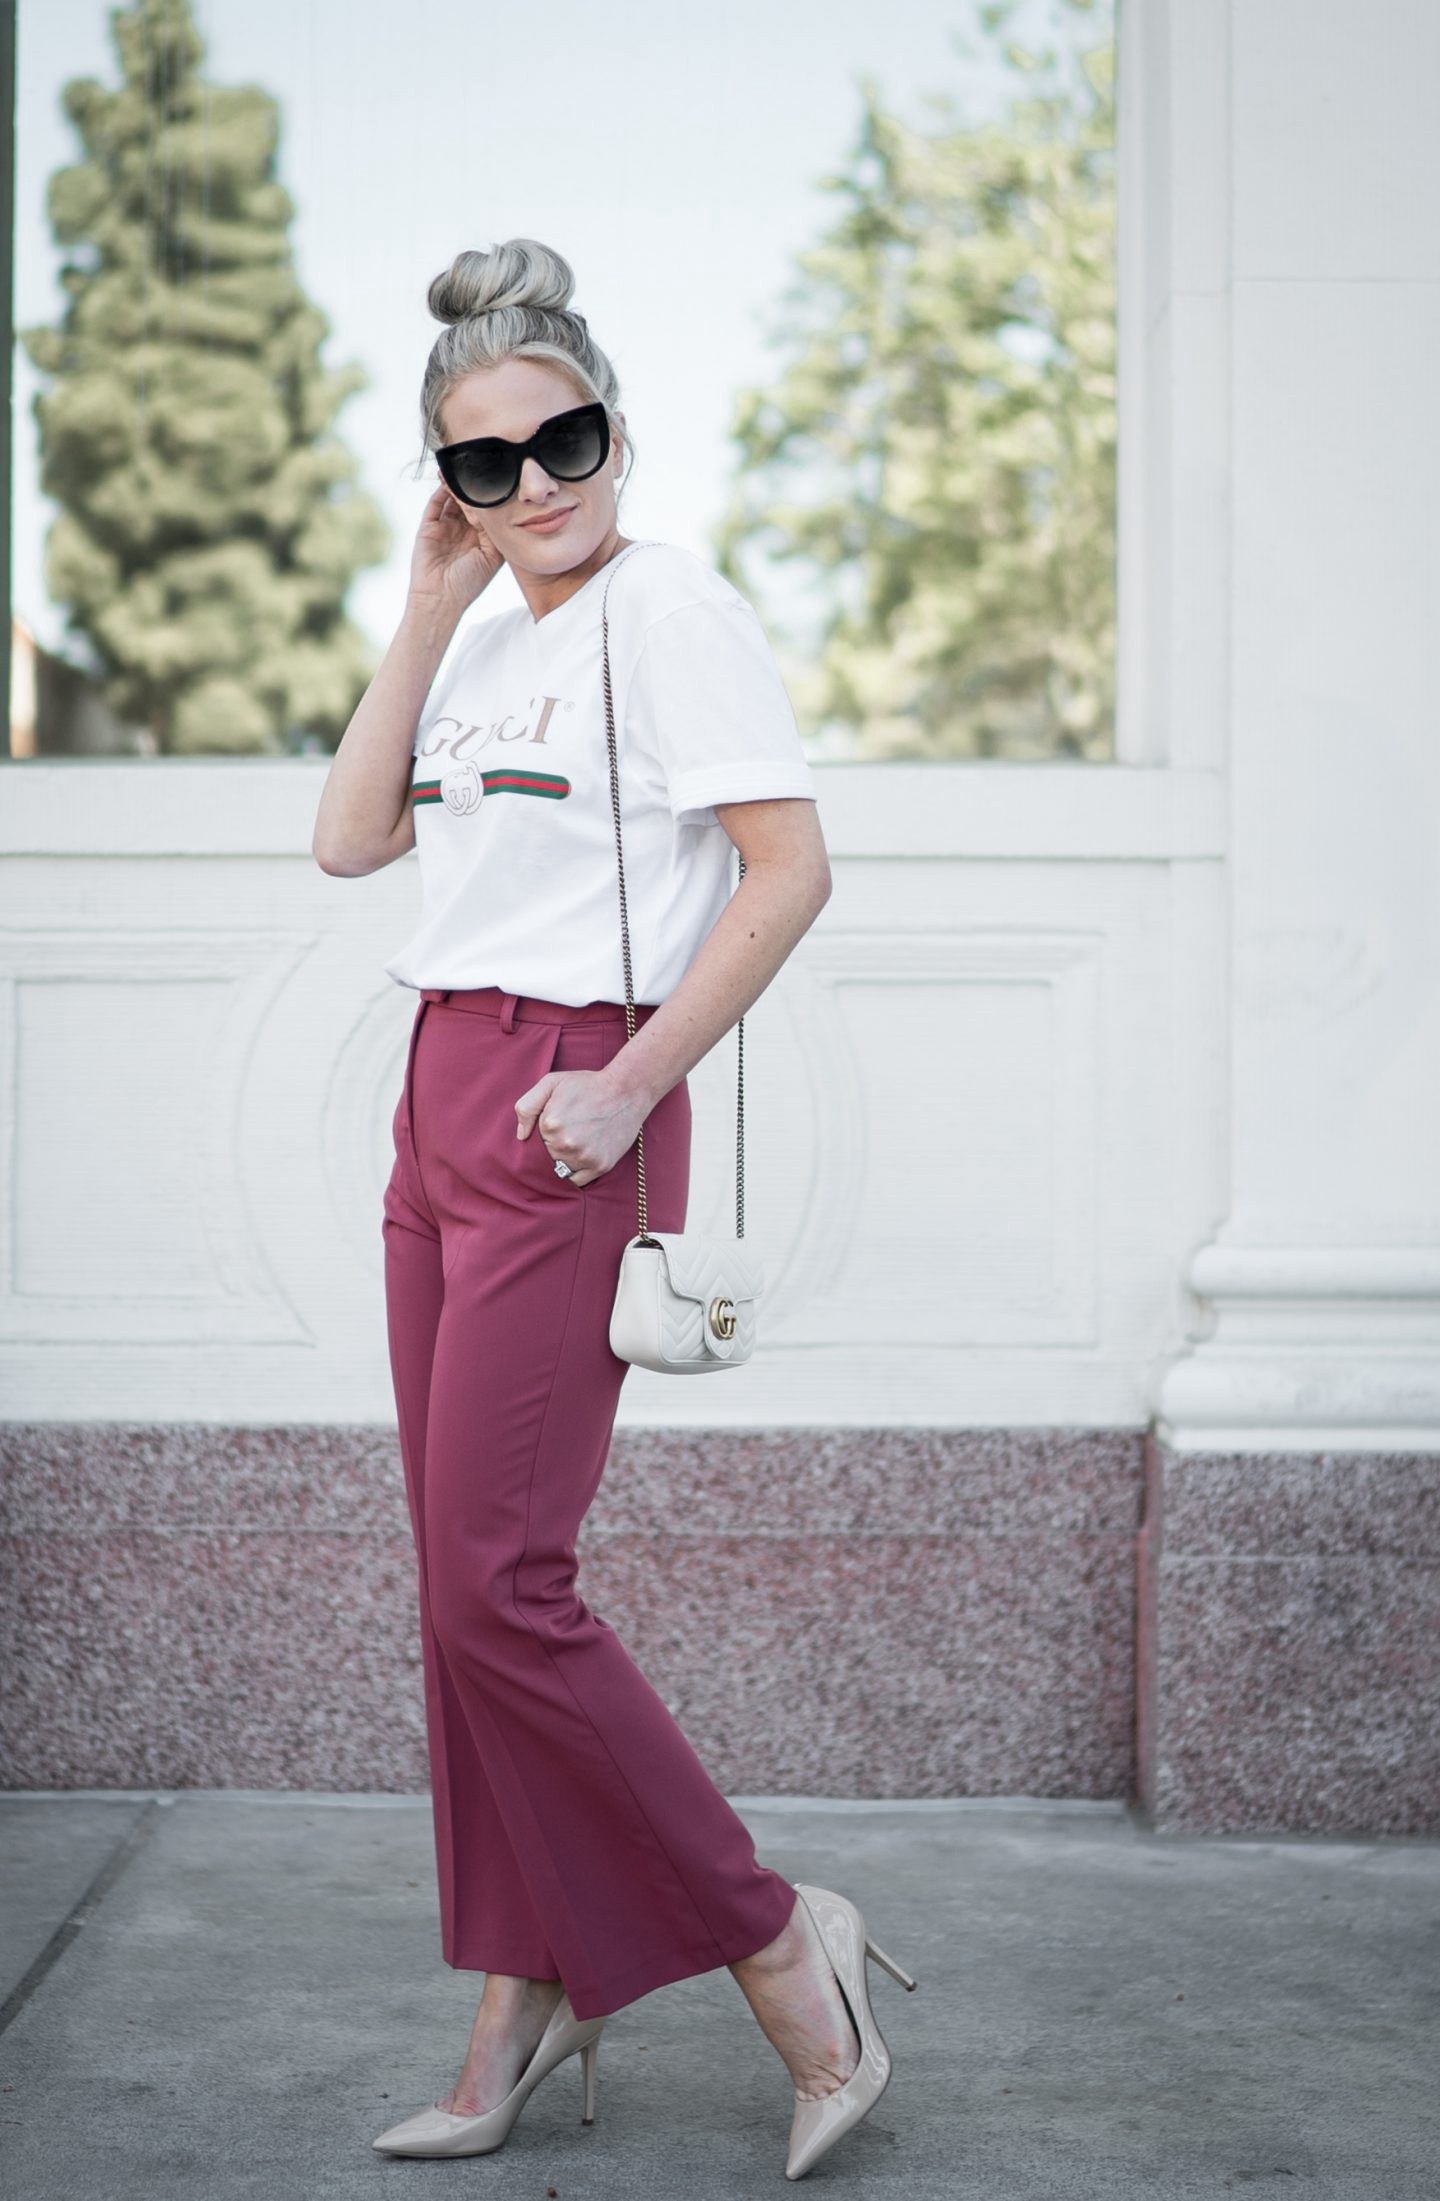 A Gucci Logo Shirt and Other Must Have Gucci Dupes styled by popular Orange County fashion blogger, Dress Me Blonde